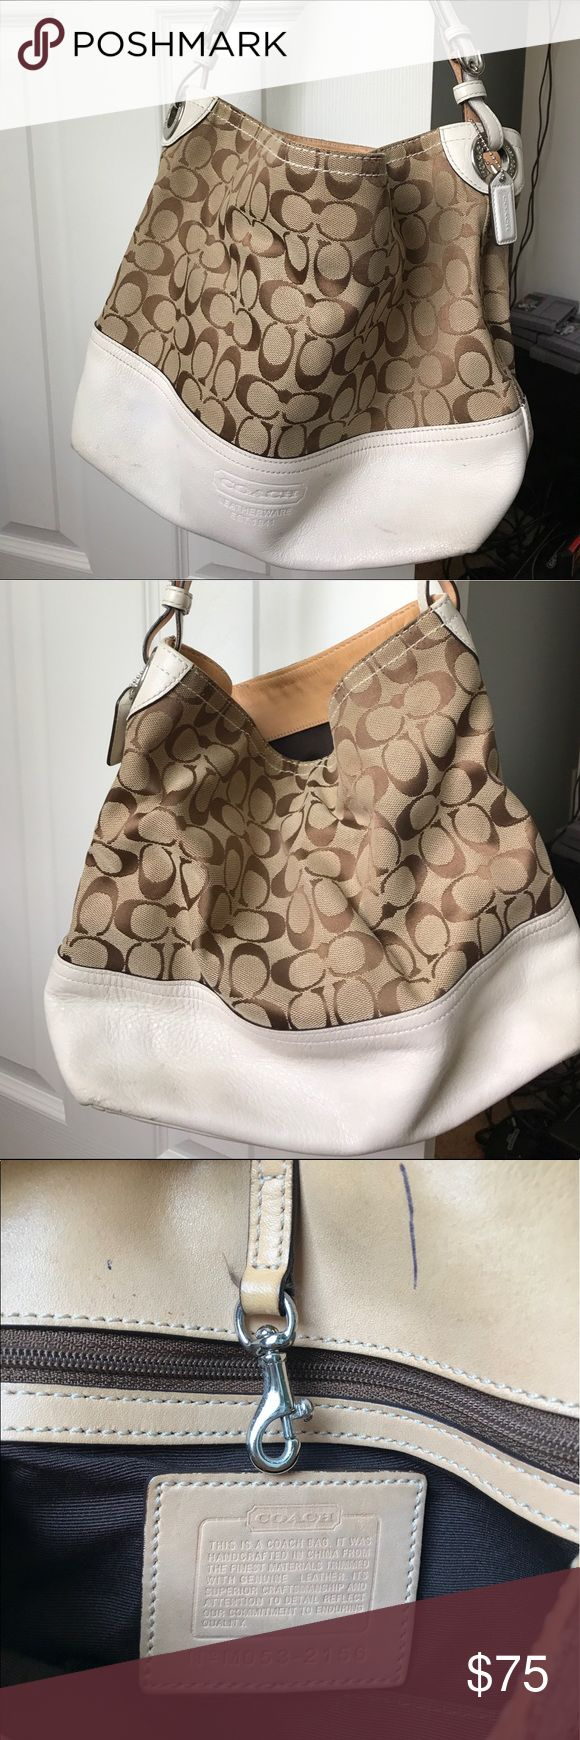 Coach hobo bag Camel colored Coach shoulder bag. Definitely signs of wear... they might be able to. One out with some minor cleaning. No tears or holes in bag. Other than minor marks on the bag it's in very good condition. Coach Bags Shoulder Bags